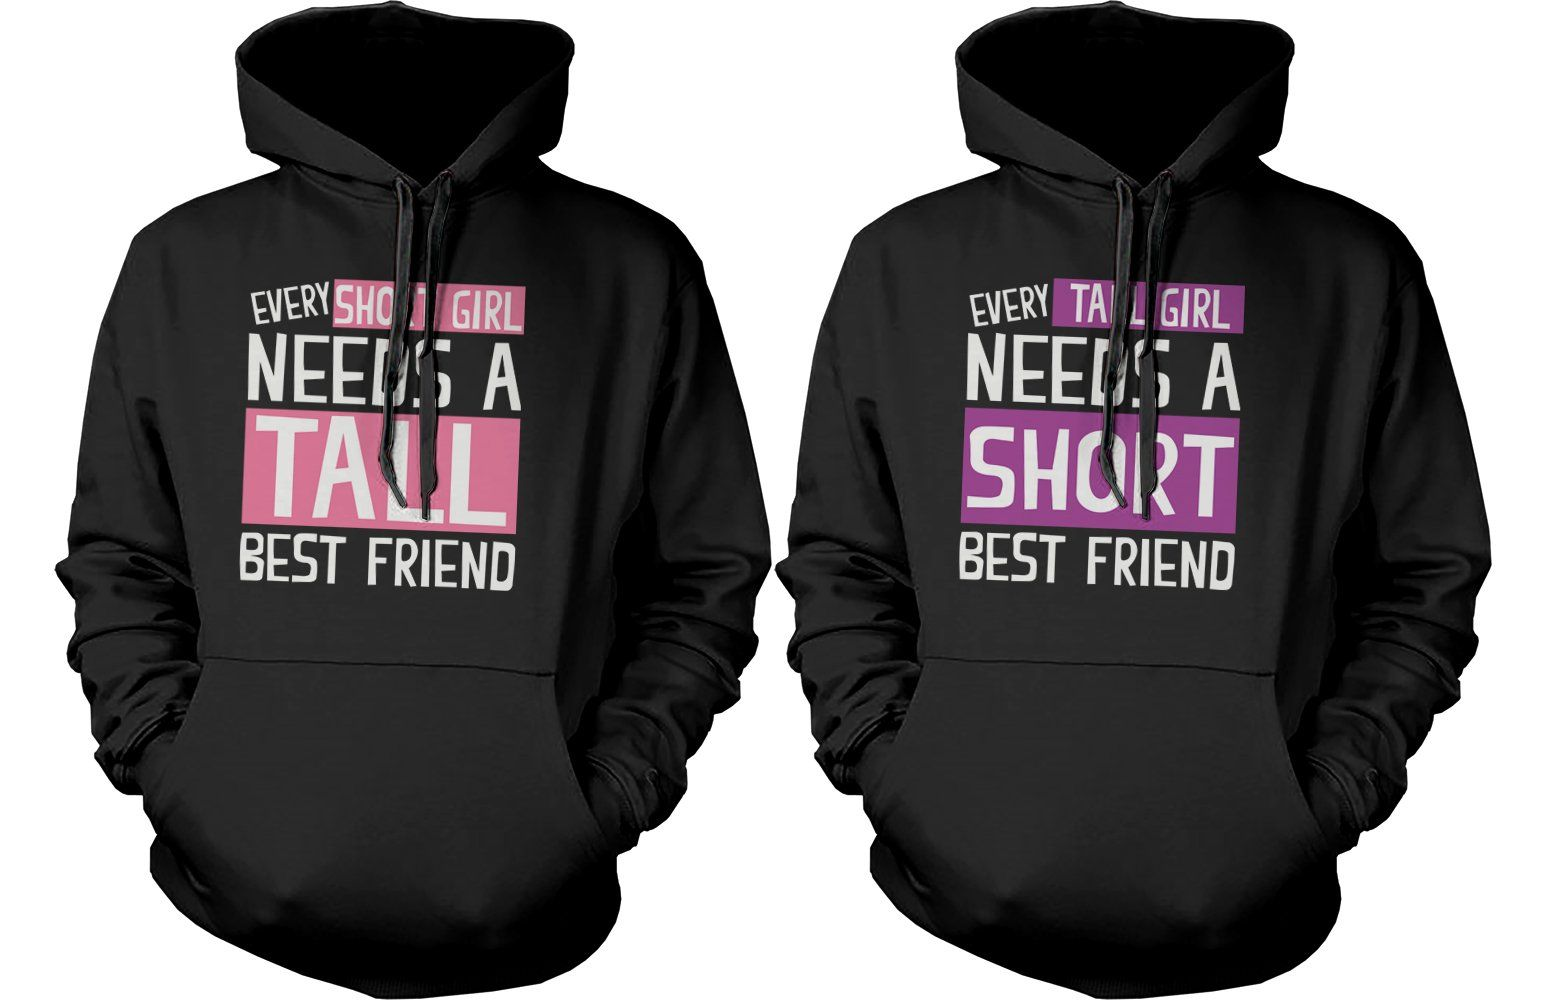 BFF Accessories BFF Pullover Sweaters - Hoodies for Tall and Short ...